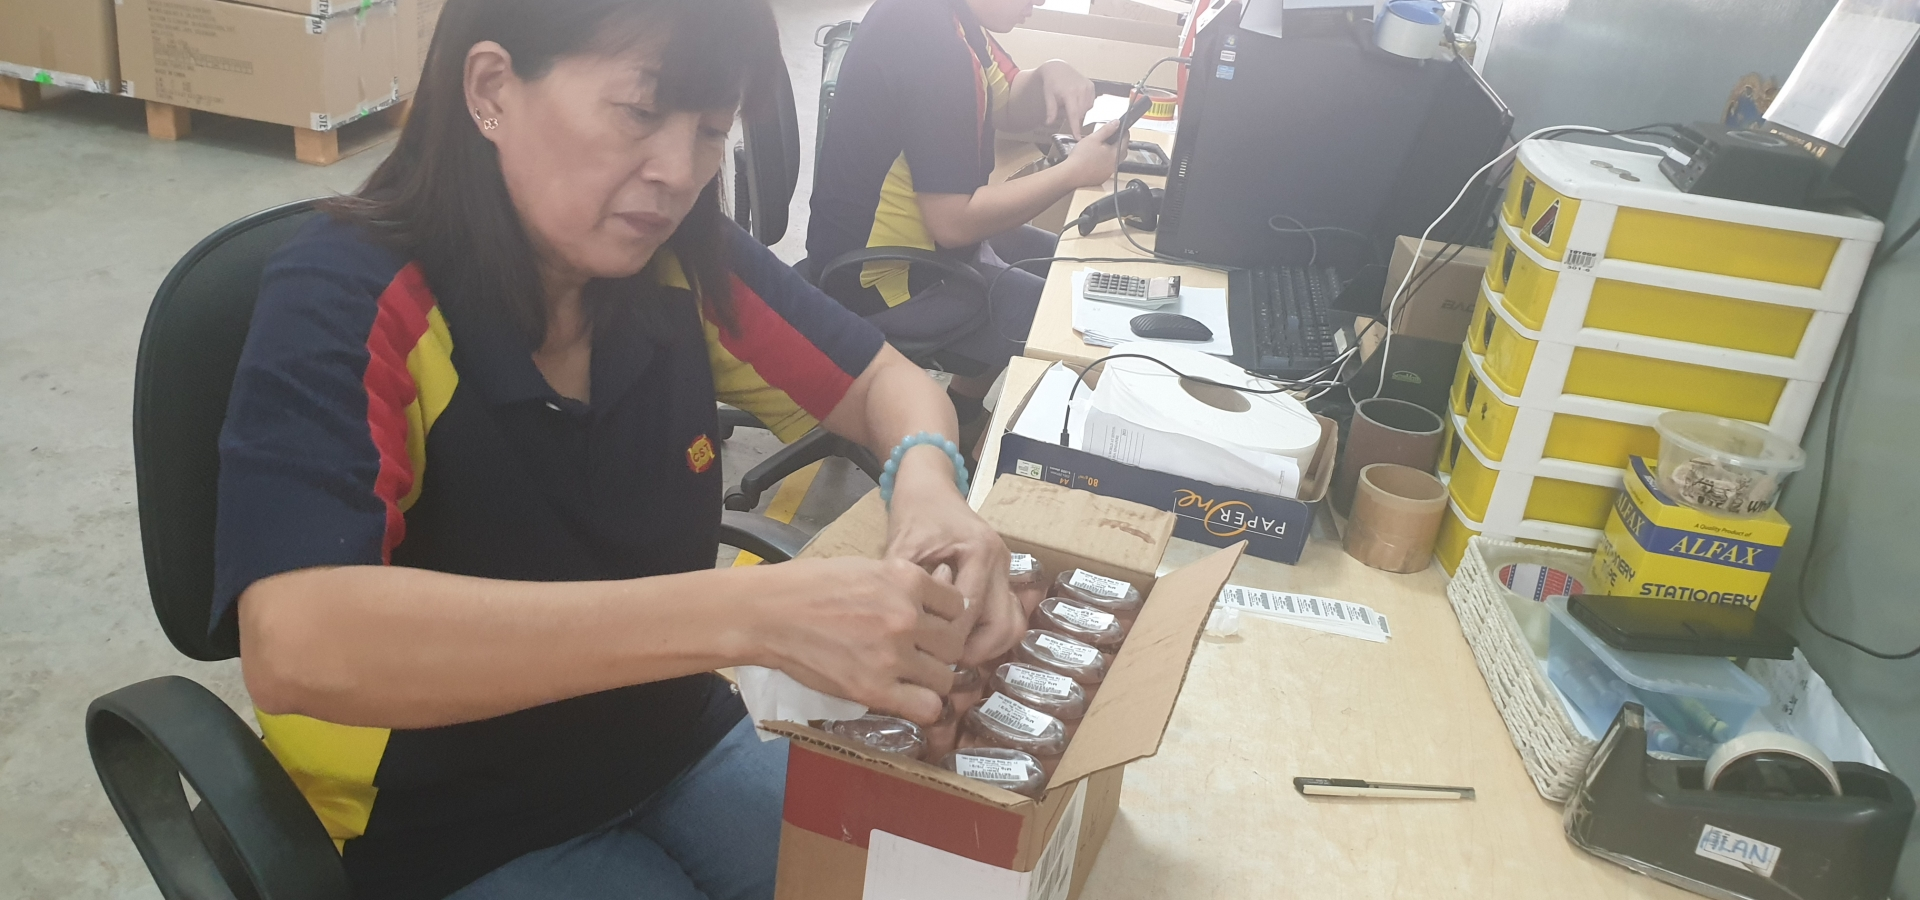 Barcoding, Pasting Labels, Value Added Services, VAS